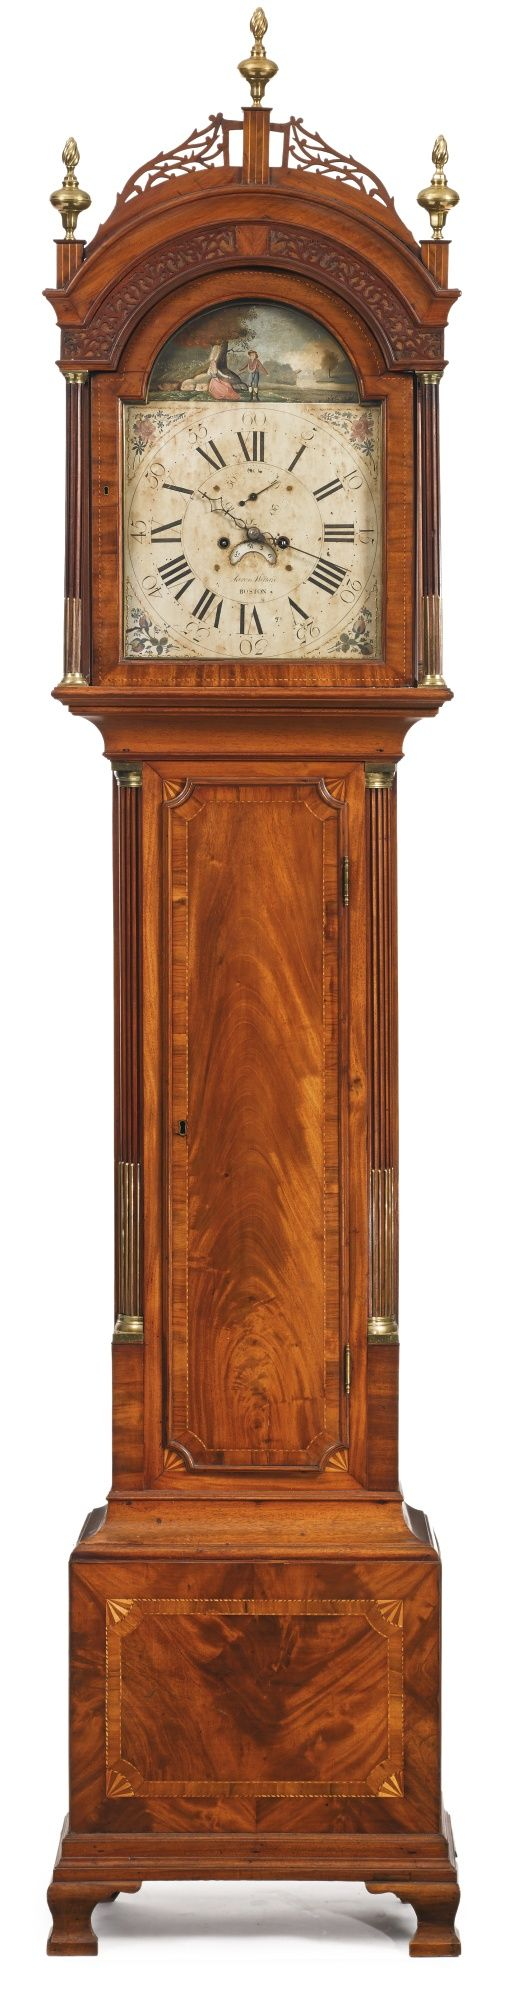 The Important Asa Stebbins Federal Inlaid and Figured Mahogany Tall Case Clock, works by Aaron Willard (1757-1844), painted dial probably by John Minot (w. 1793-1826), case attributed to Stephen Badlam Sr. (1751-1815), Boston, Massachusetts, circa 1800 Retains its original flanking ornate cast brass finials. Height 104 3/4 in. by Width 22 in. by Depth 12 in. [sold for $185,000]